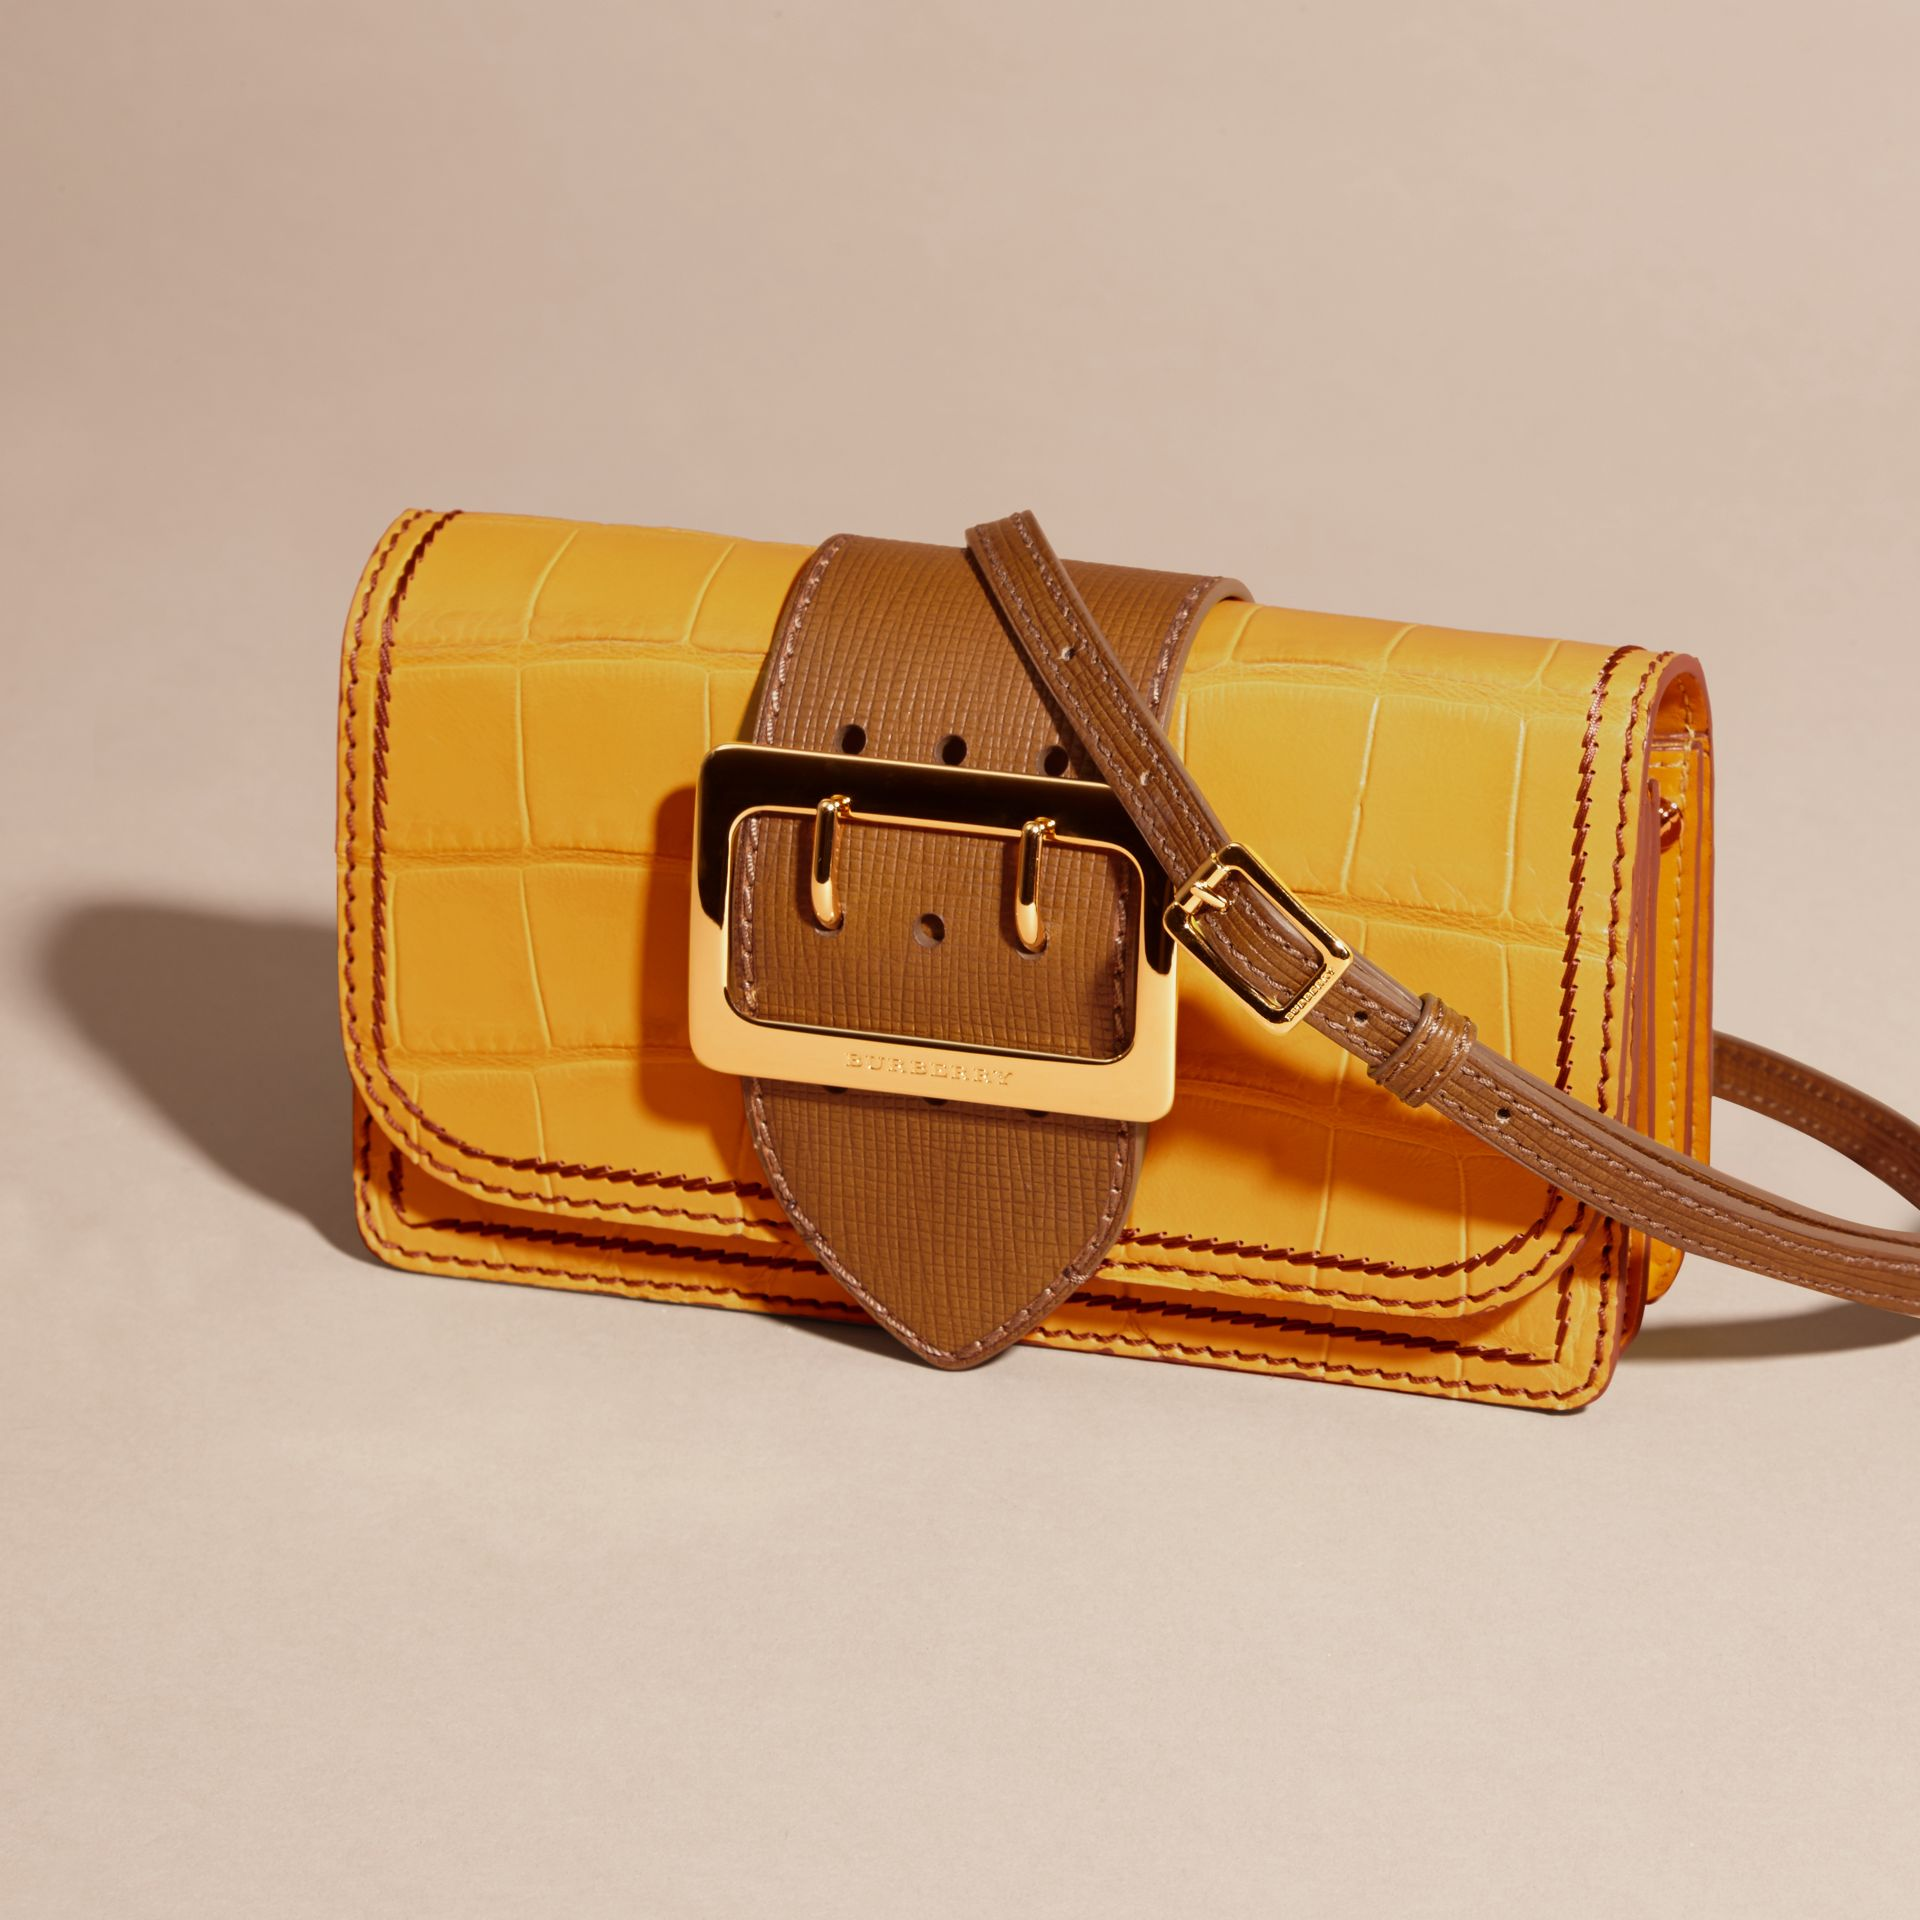 The Small Buckle Bag in Alligator and Leather in Citrus Yellow / Tan - Women | Burberry Canada - gallery image 8